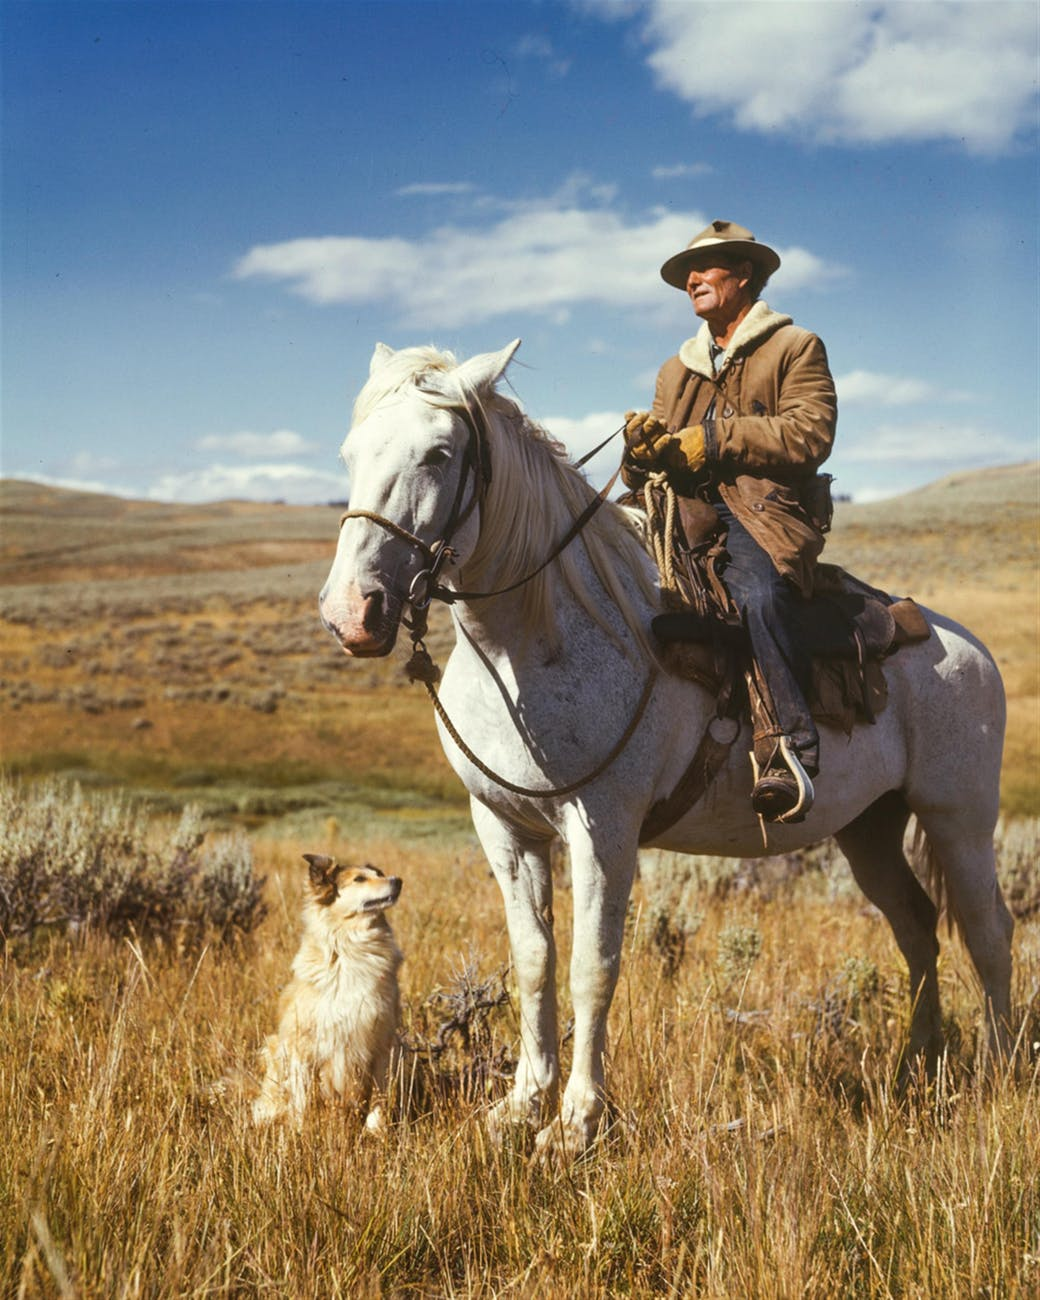 man on white horse next to dog on grassy field